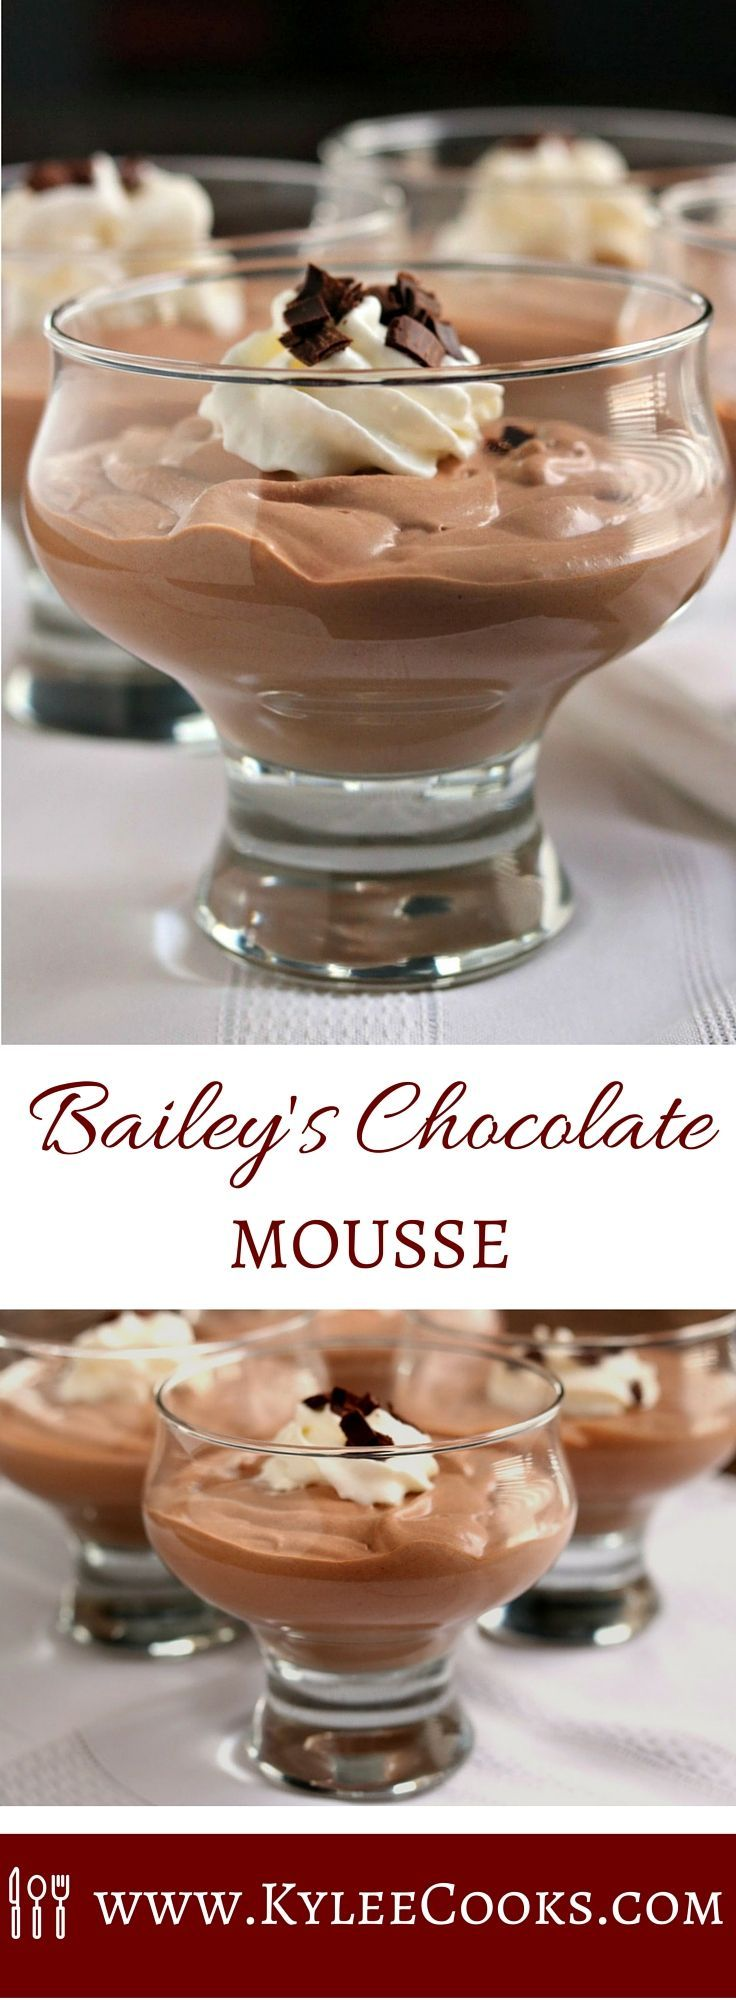 Need a really easy, really tasty and impressive dessert for a special occasion? How about this Bailey's Chocolate Mousse?  It's decadent, it's rich and it absolutely hits the spot after dinner.